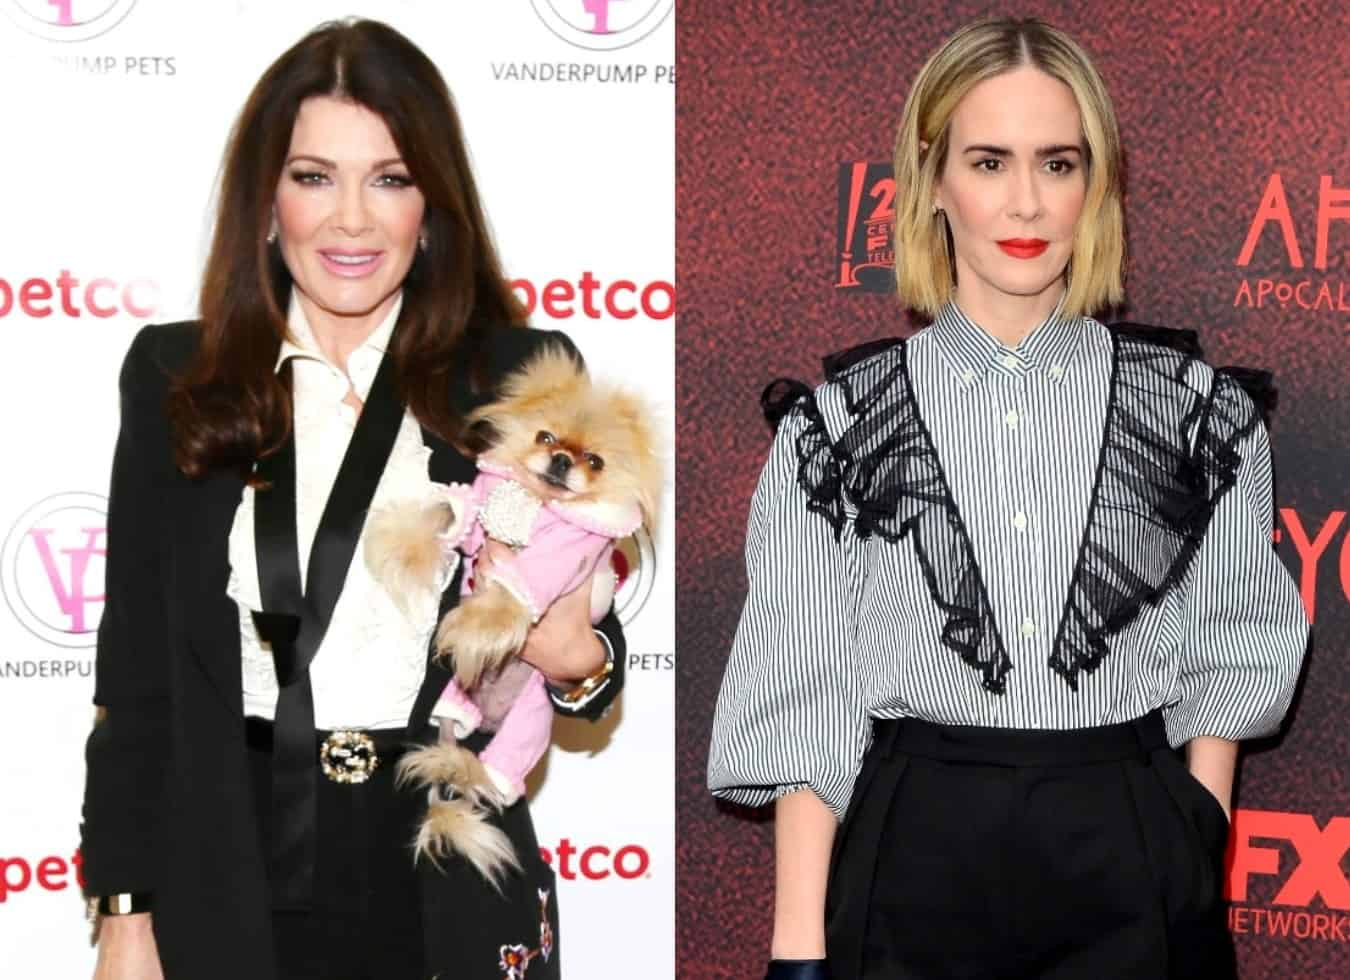 RHOBH's Lisa Vanderpump Claps Back at Sarah Paulson for Saying She's 'Not Nice,' Is She Suggesting She Lied About Meeting Her?